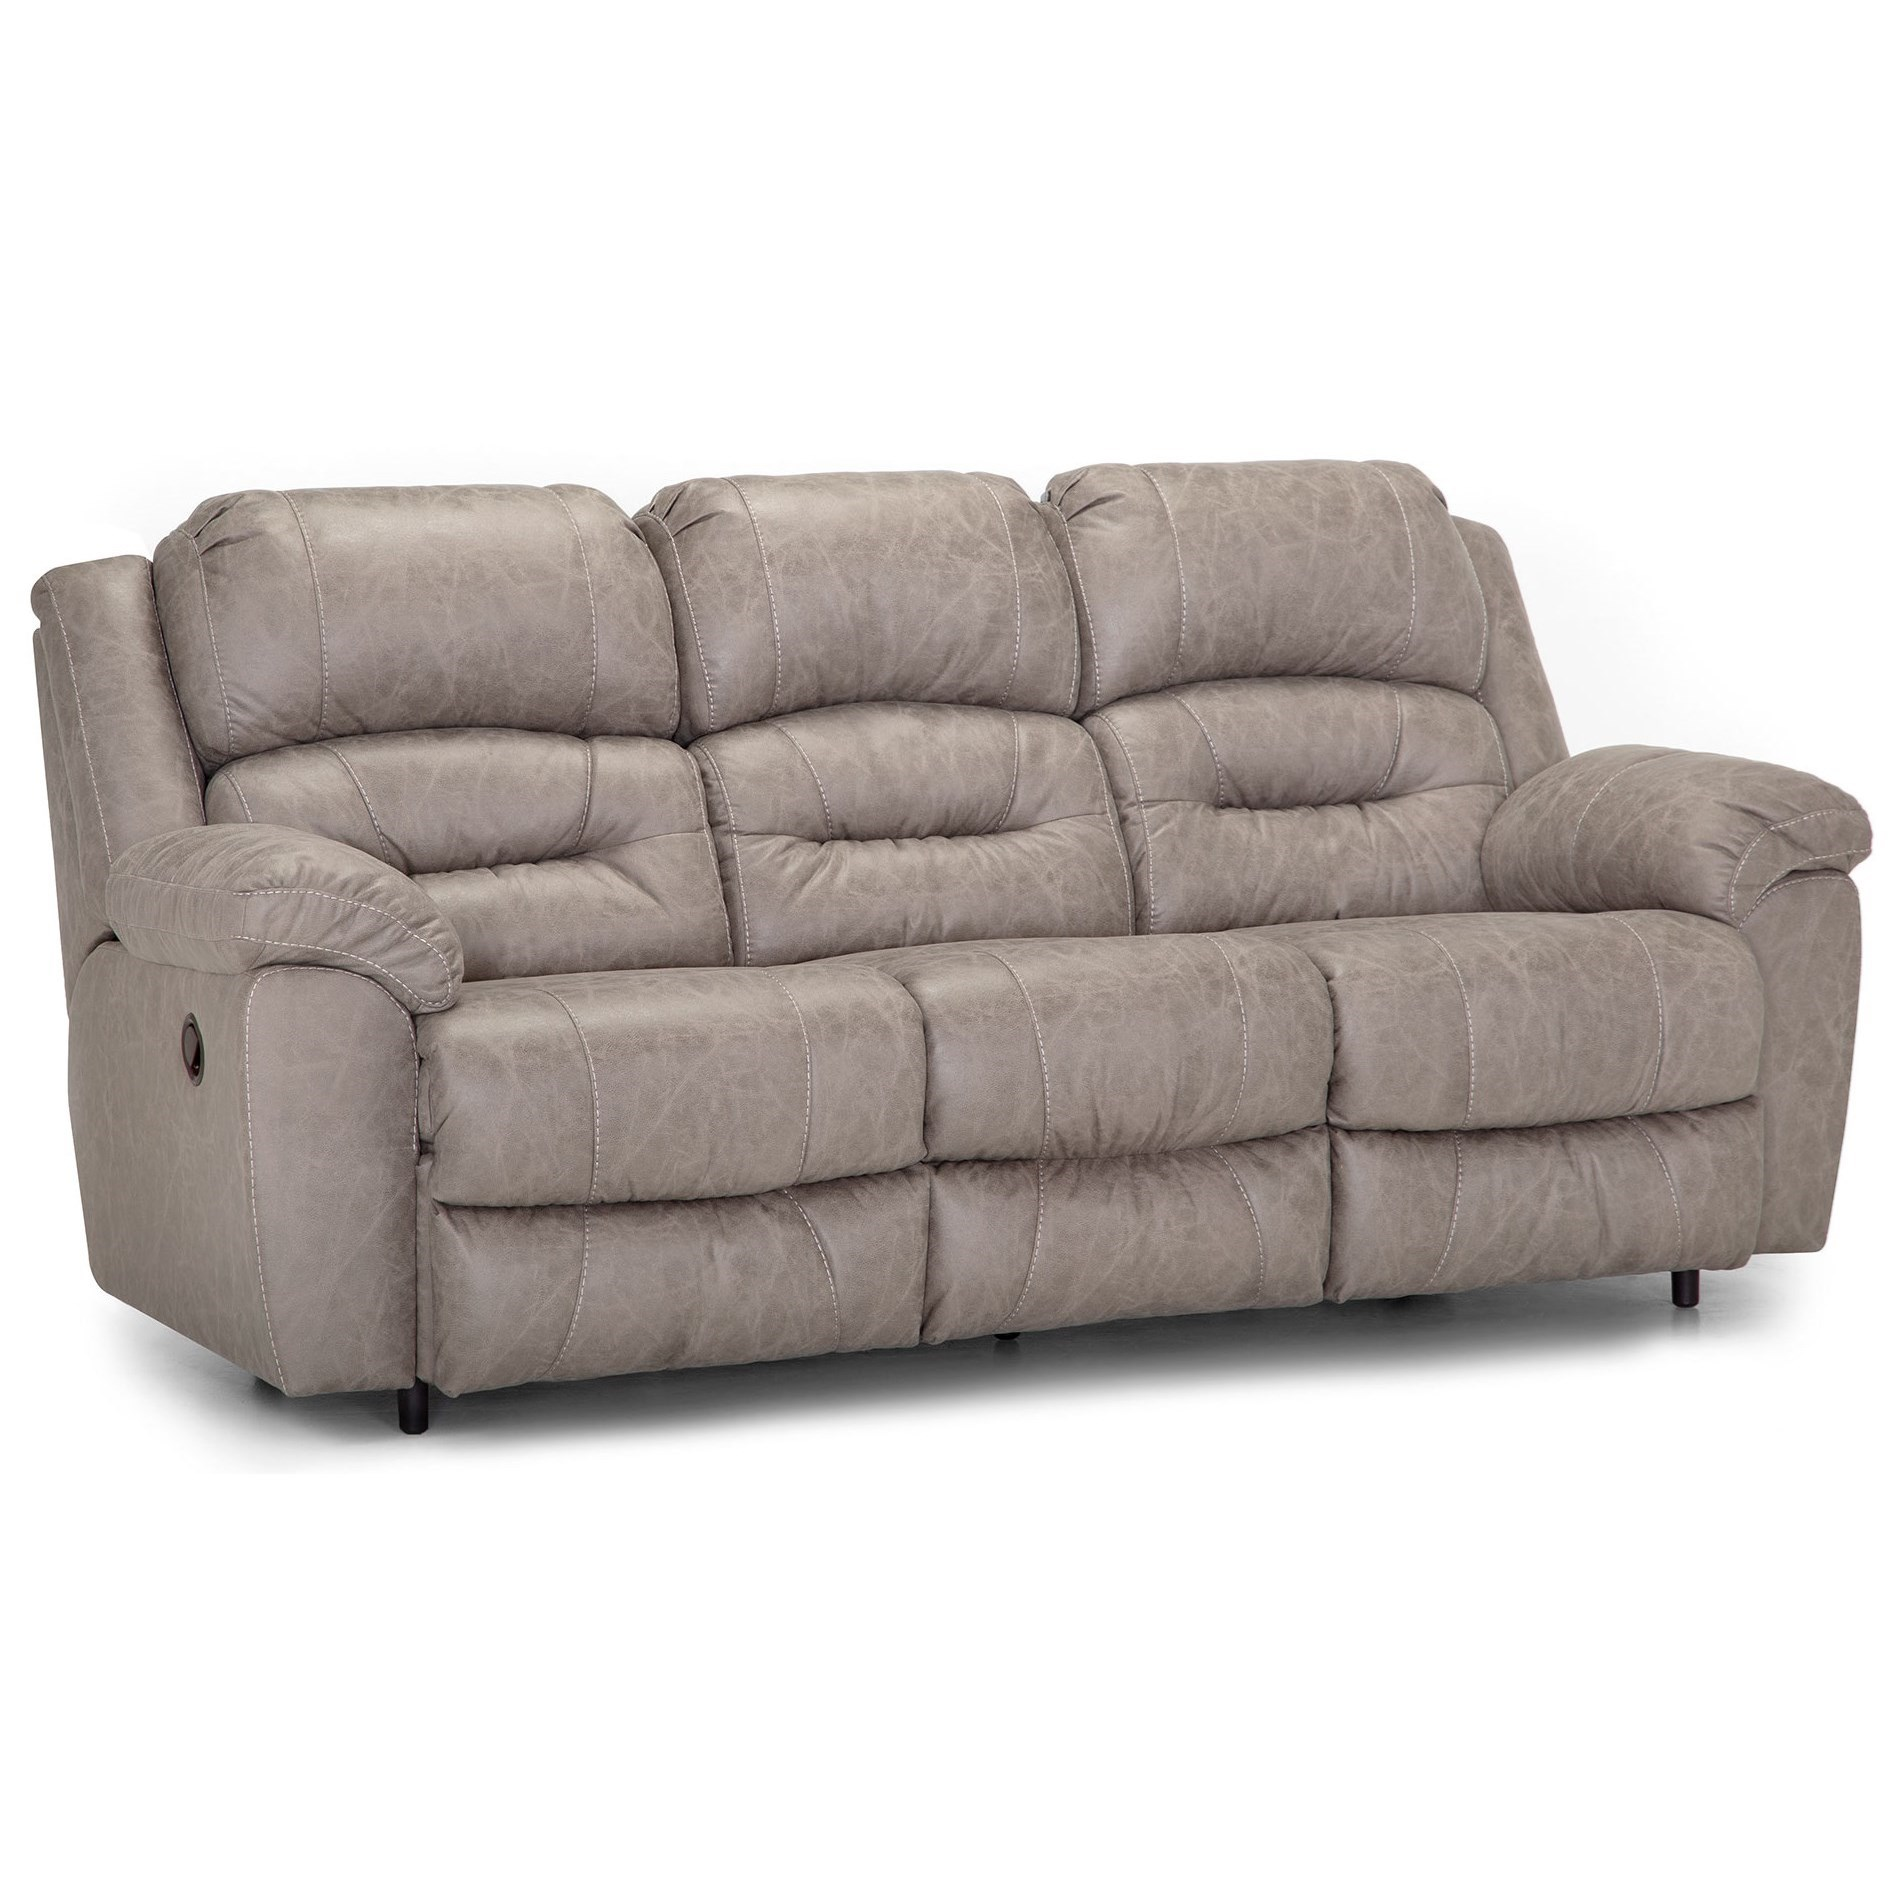 Bellamy Power Reclining Sofa by Franklin at Virginia Furniture Market